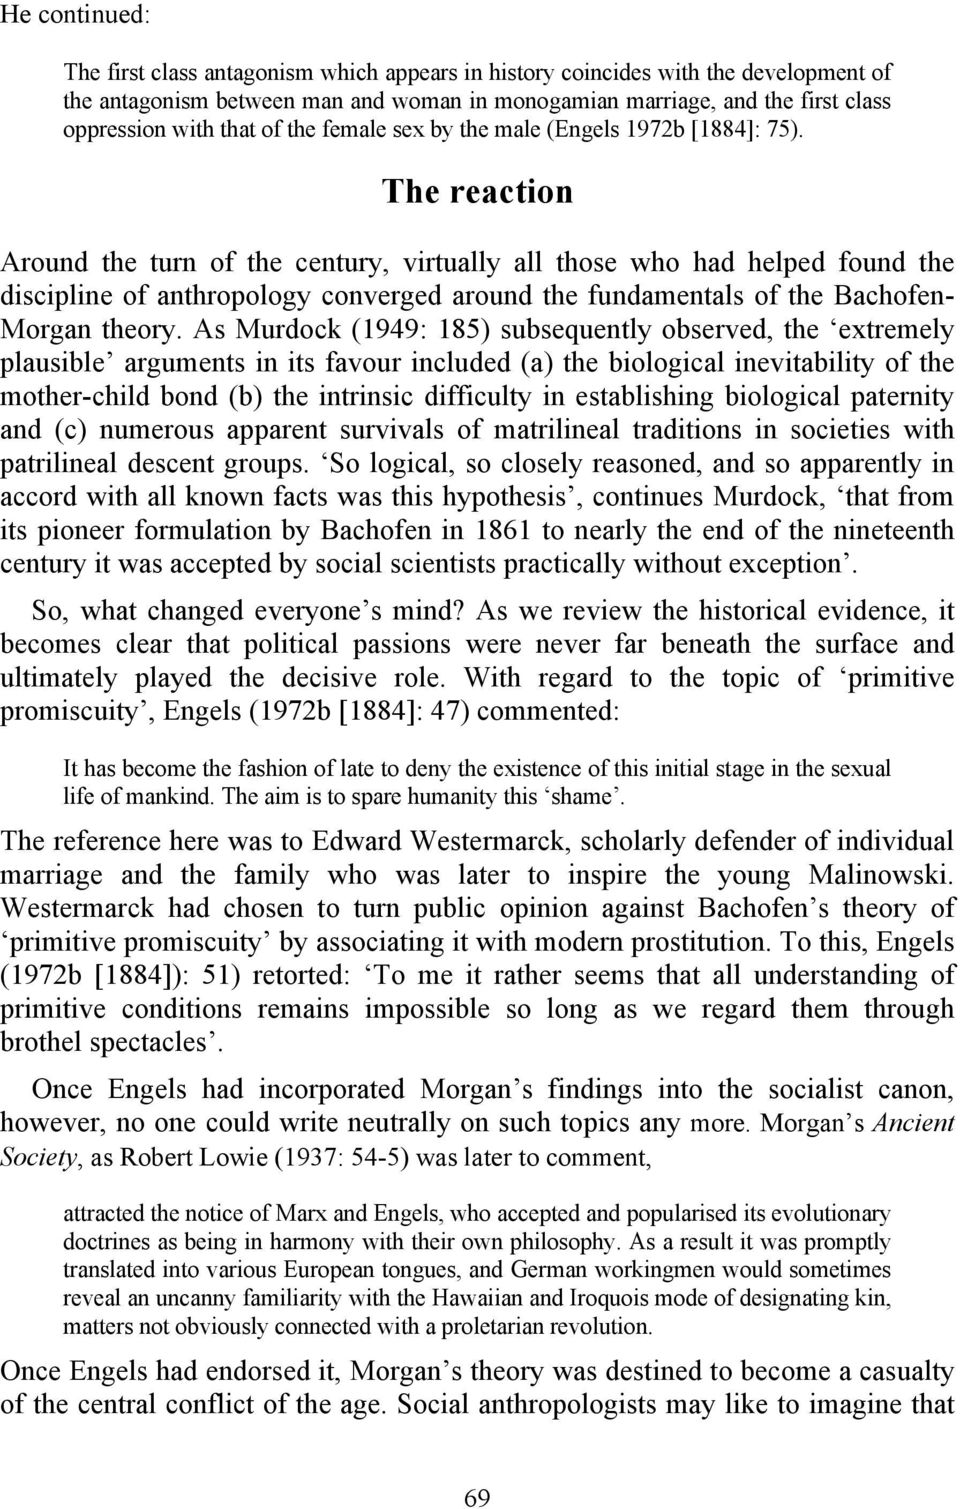 The reaction Around the turn of the century, virtually all those who had helped found the discipline of anthropology converged around the fundamentals of the Bachofen- Morgan theory.